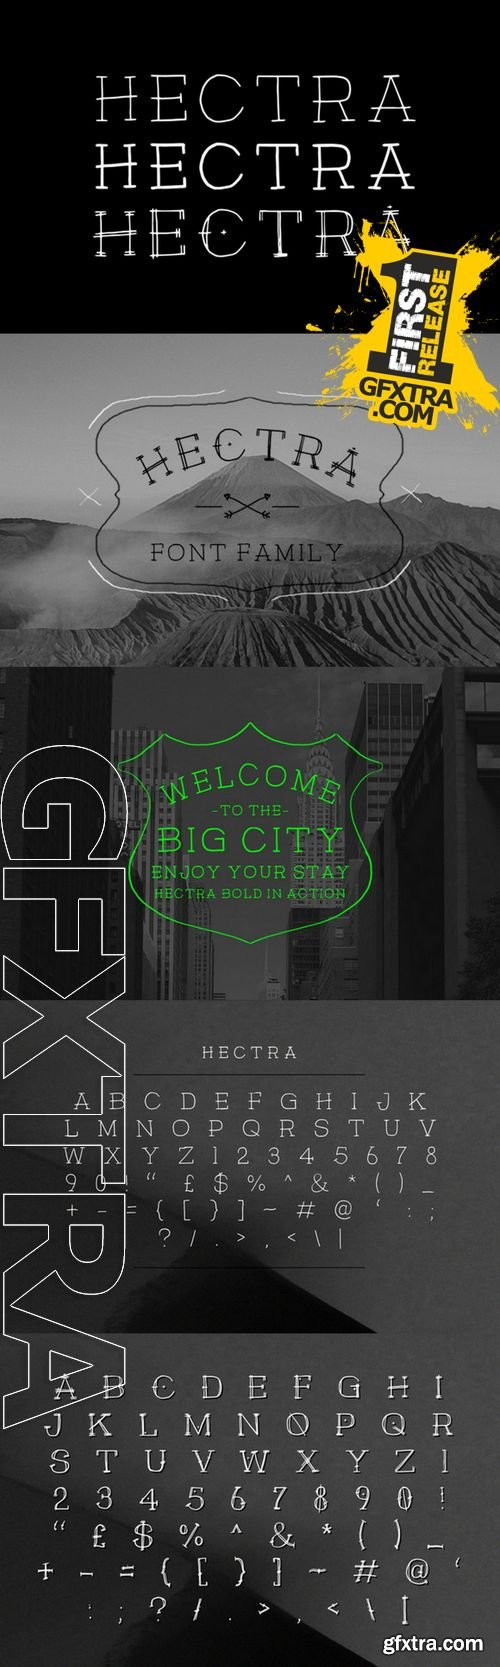 Hectra Font Family - CM 135694